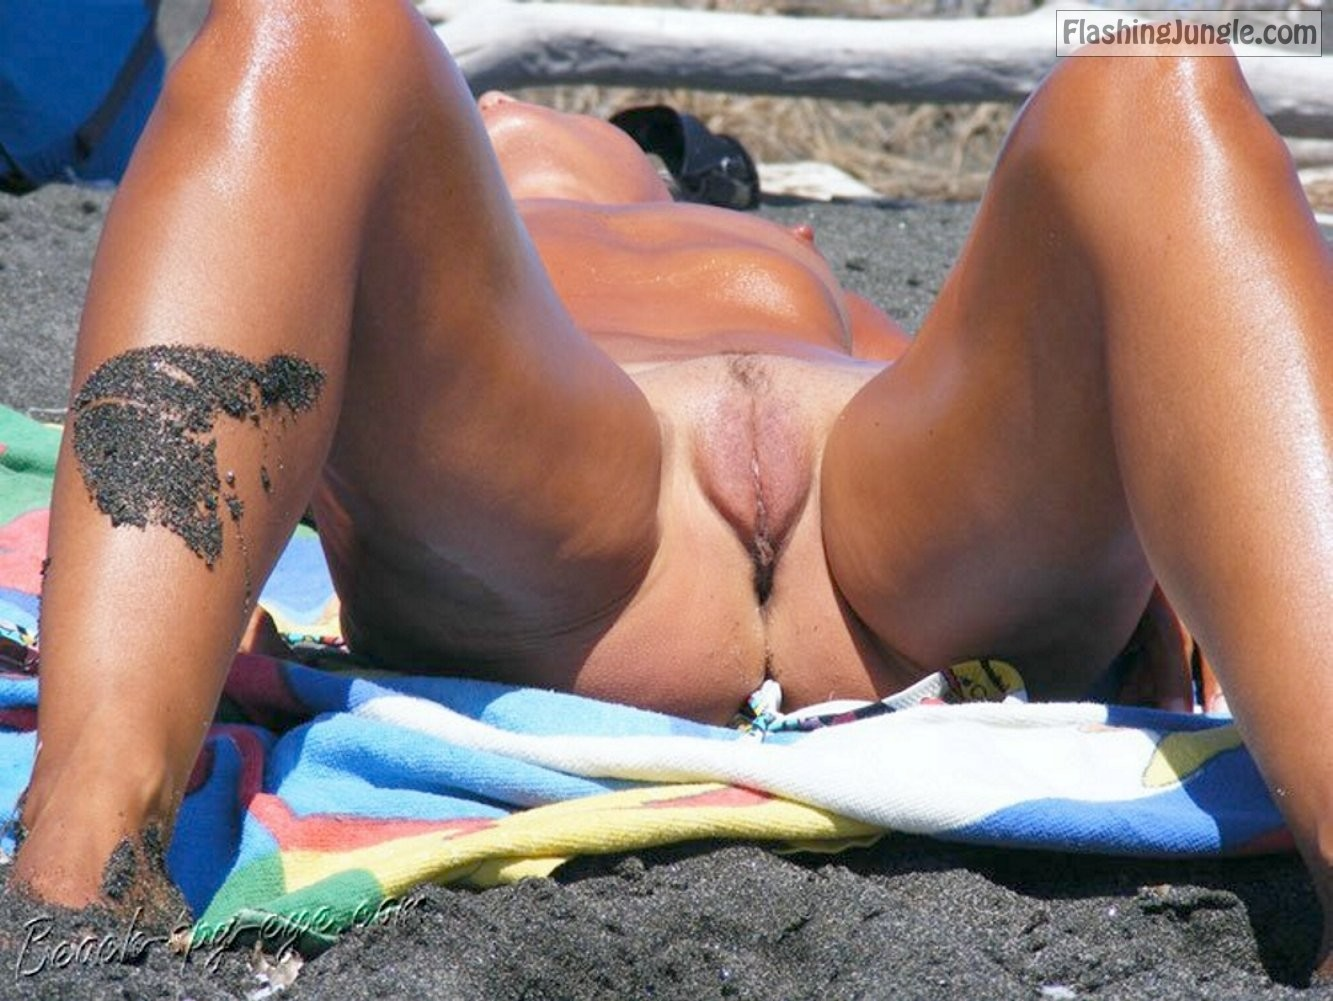 Porno hot pusy bitch naked on beach girls sex pics